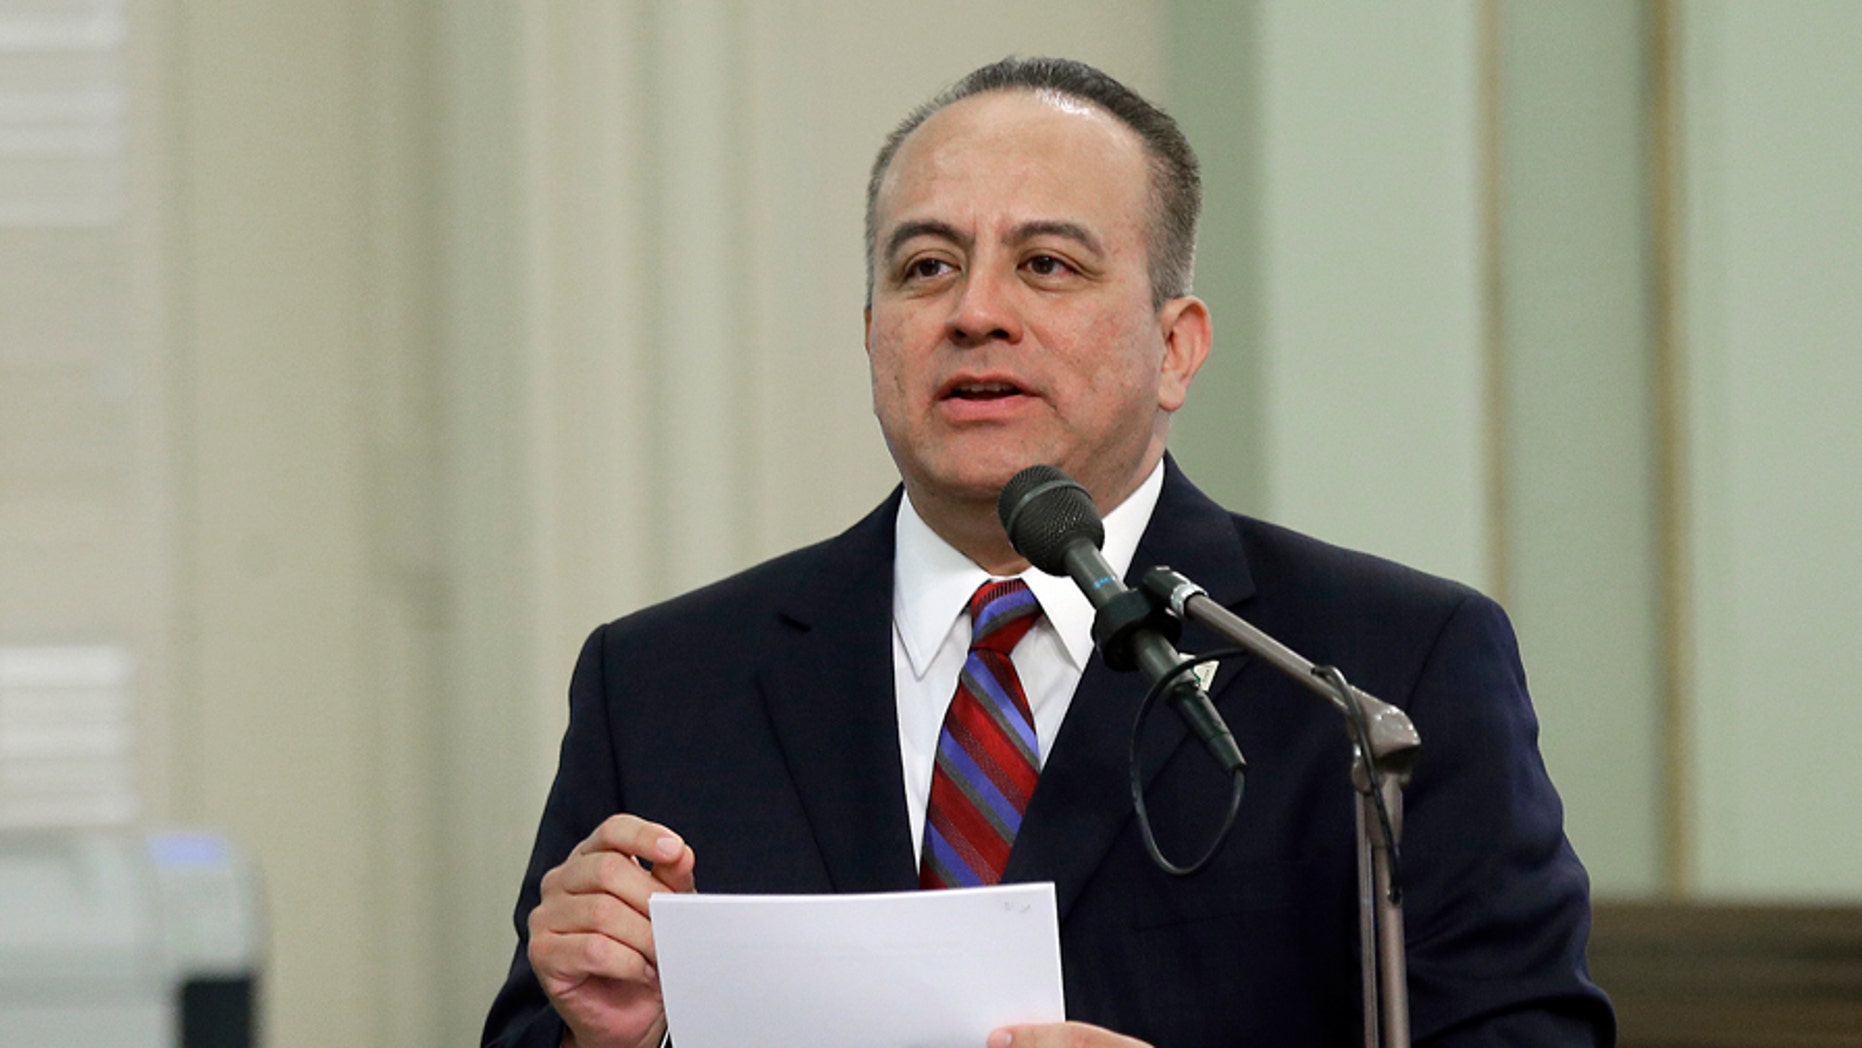 FILE - In this May 4, 2017, file photo, Assemblyman Raul Bocanegra, D-Los Angeles, speaks at the Capitol in Sacramento, Calif. Bocanegra says he's stepping down amid allegations of sexual misconduct.